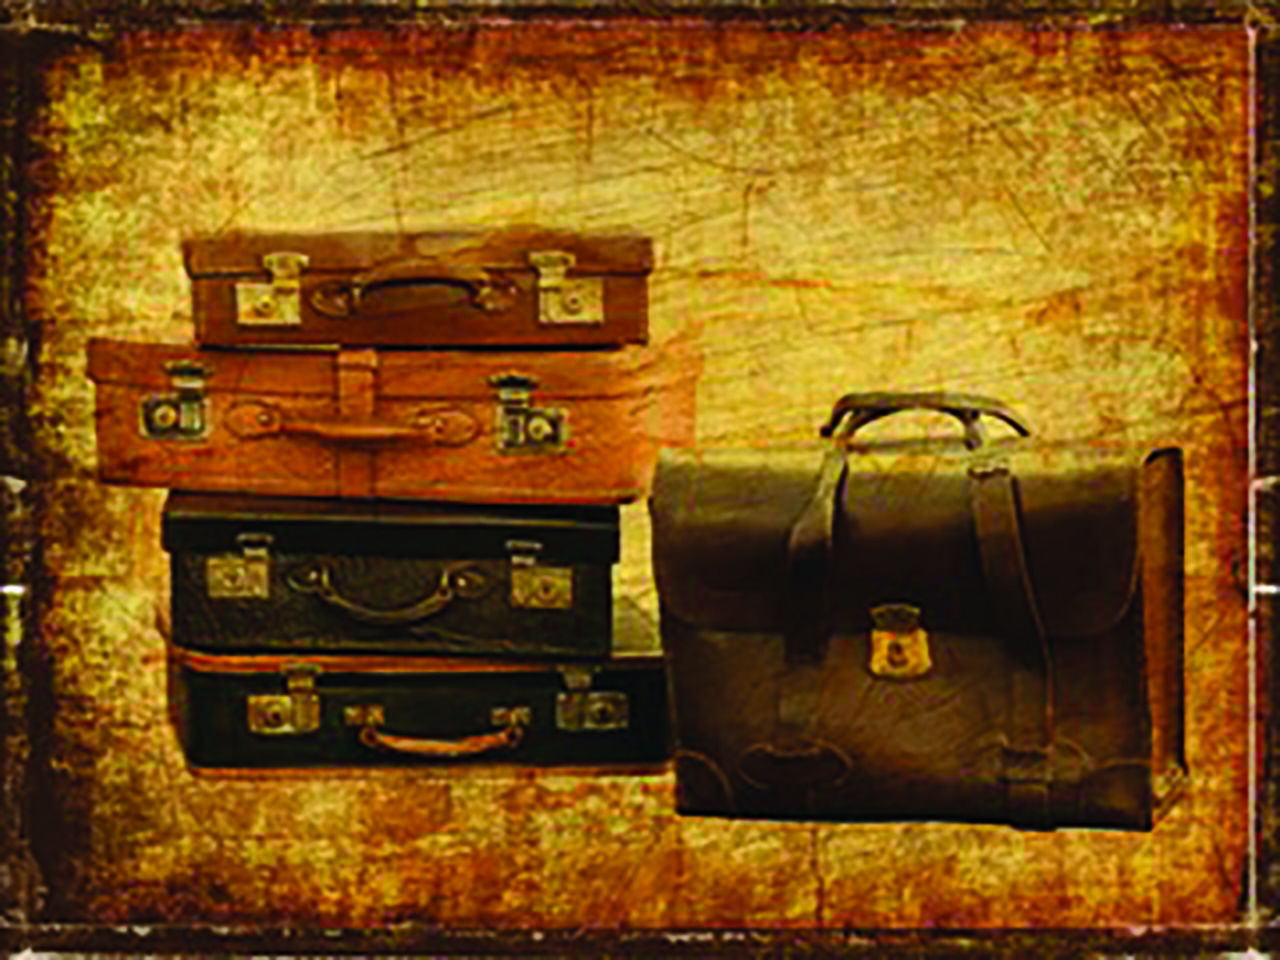 A stack of suitcases on a brown background.